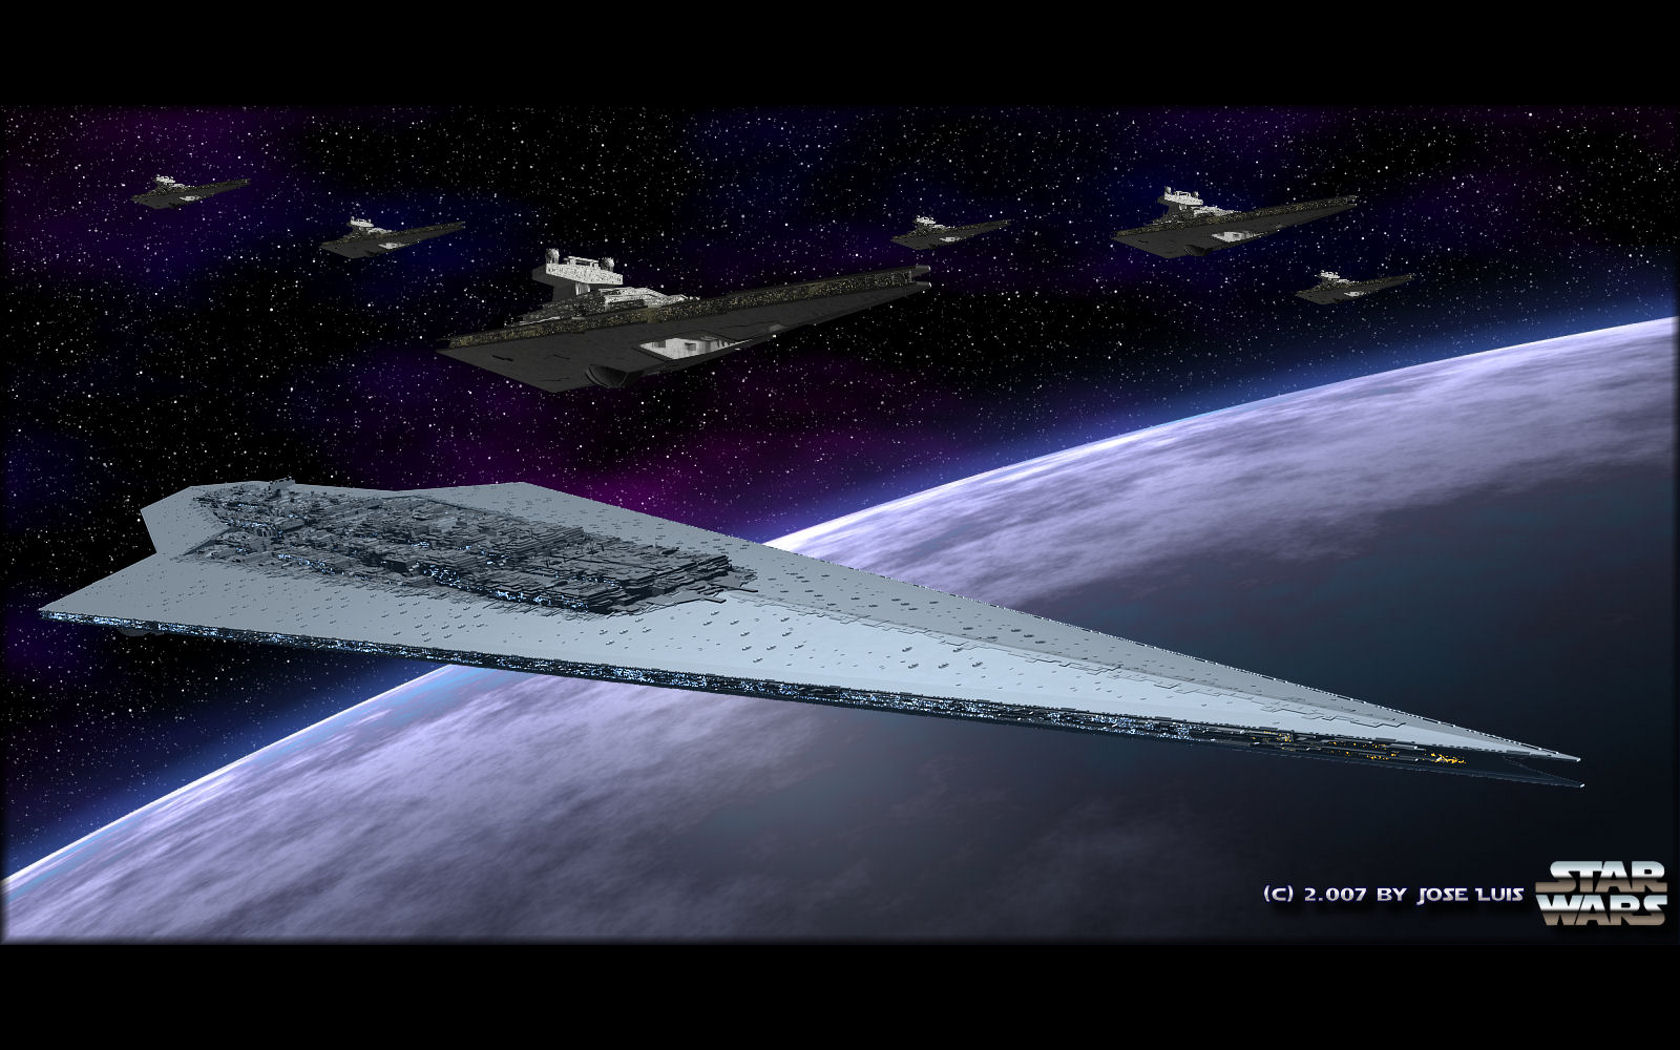 Star wars wallpaper set 7 awesome wallpapers - Star wars wallpaper ...